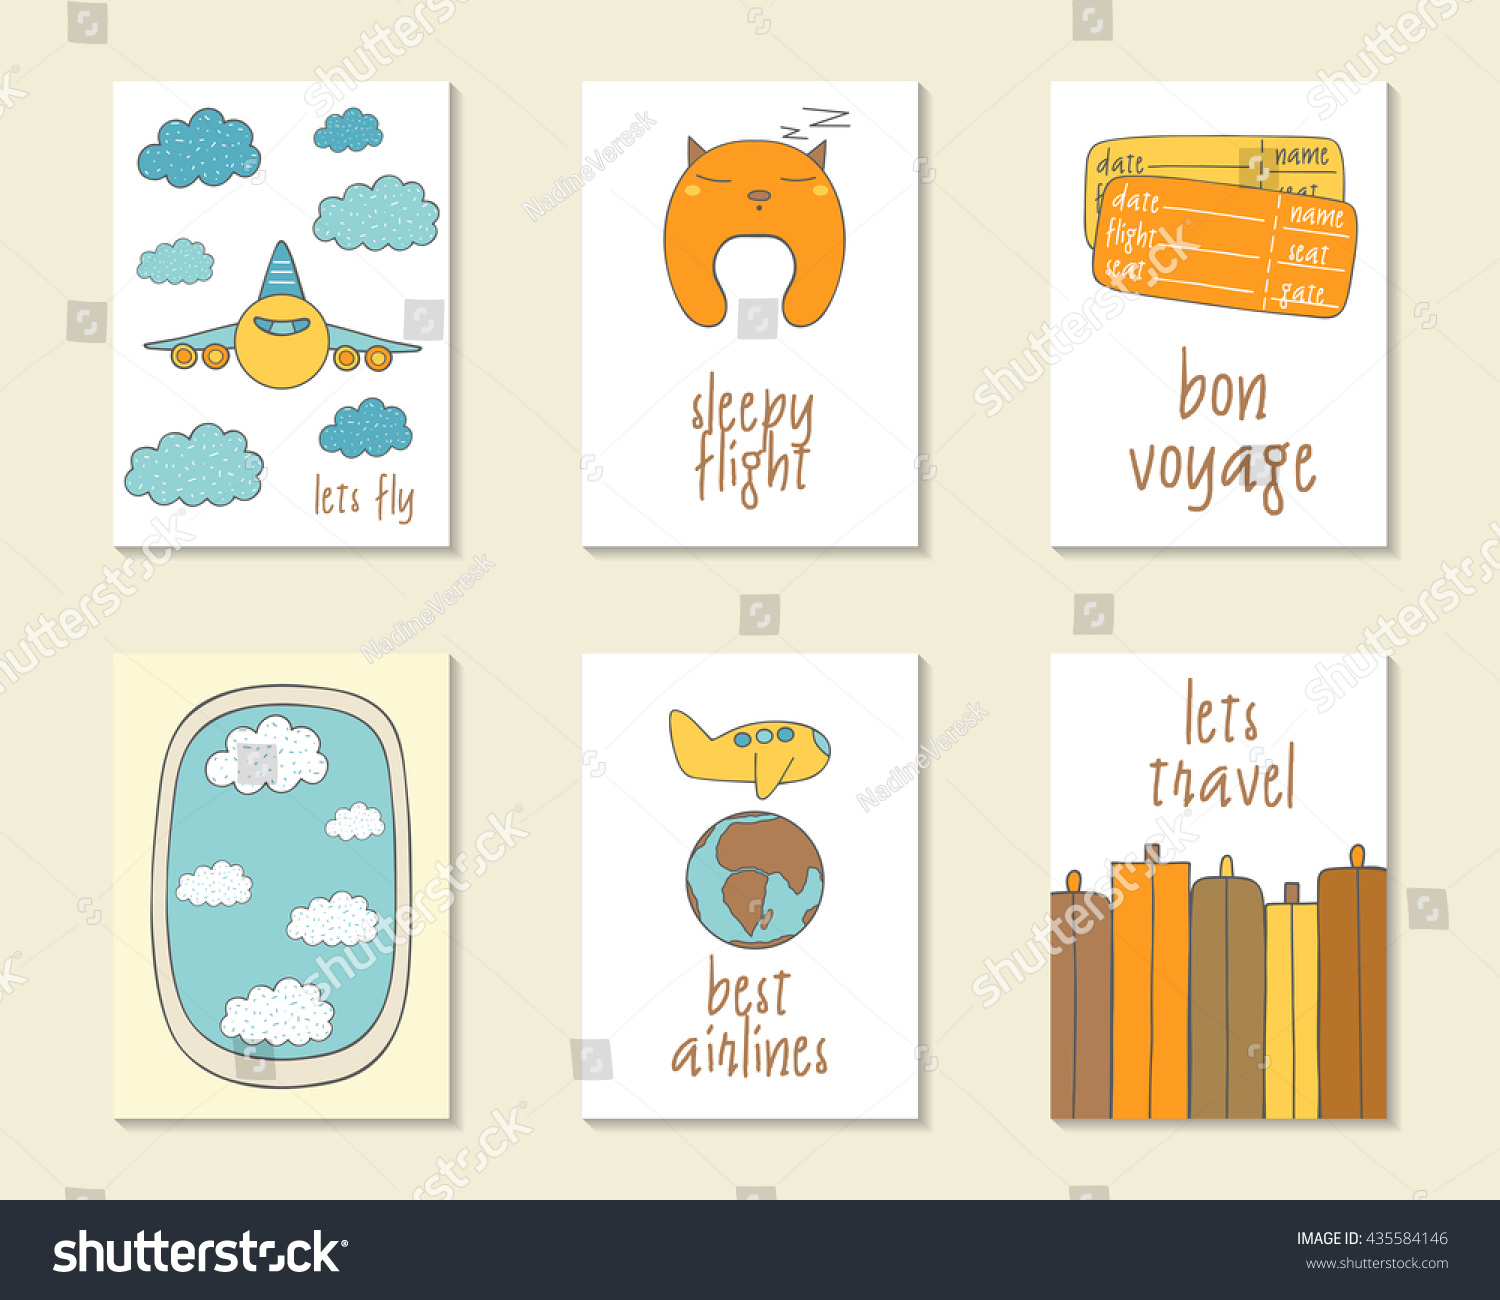 Printable Travel Brochure Template For Kids: Cute Doodle Travel Flight Cards Brochures Stock Vector